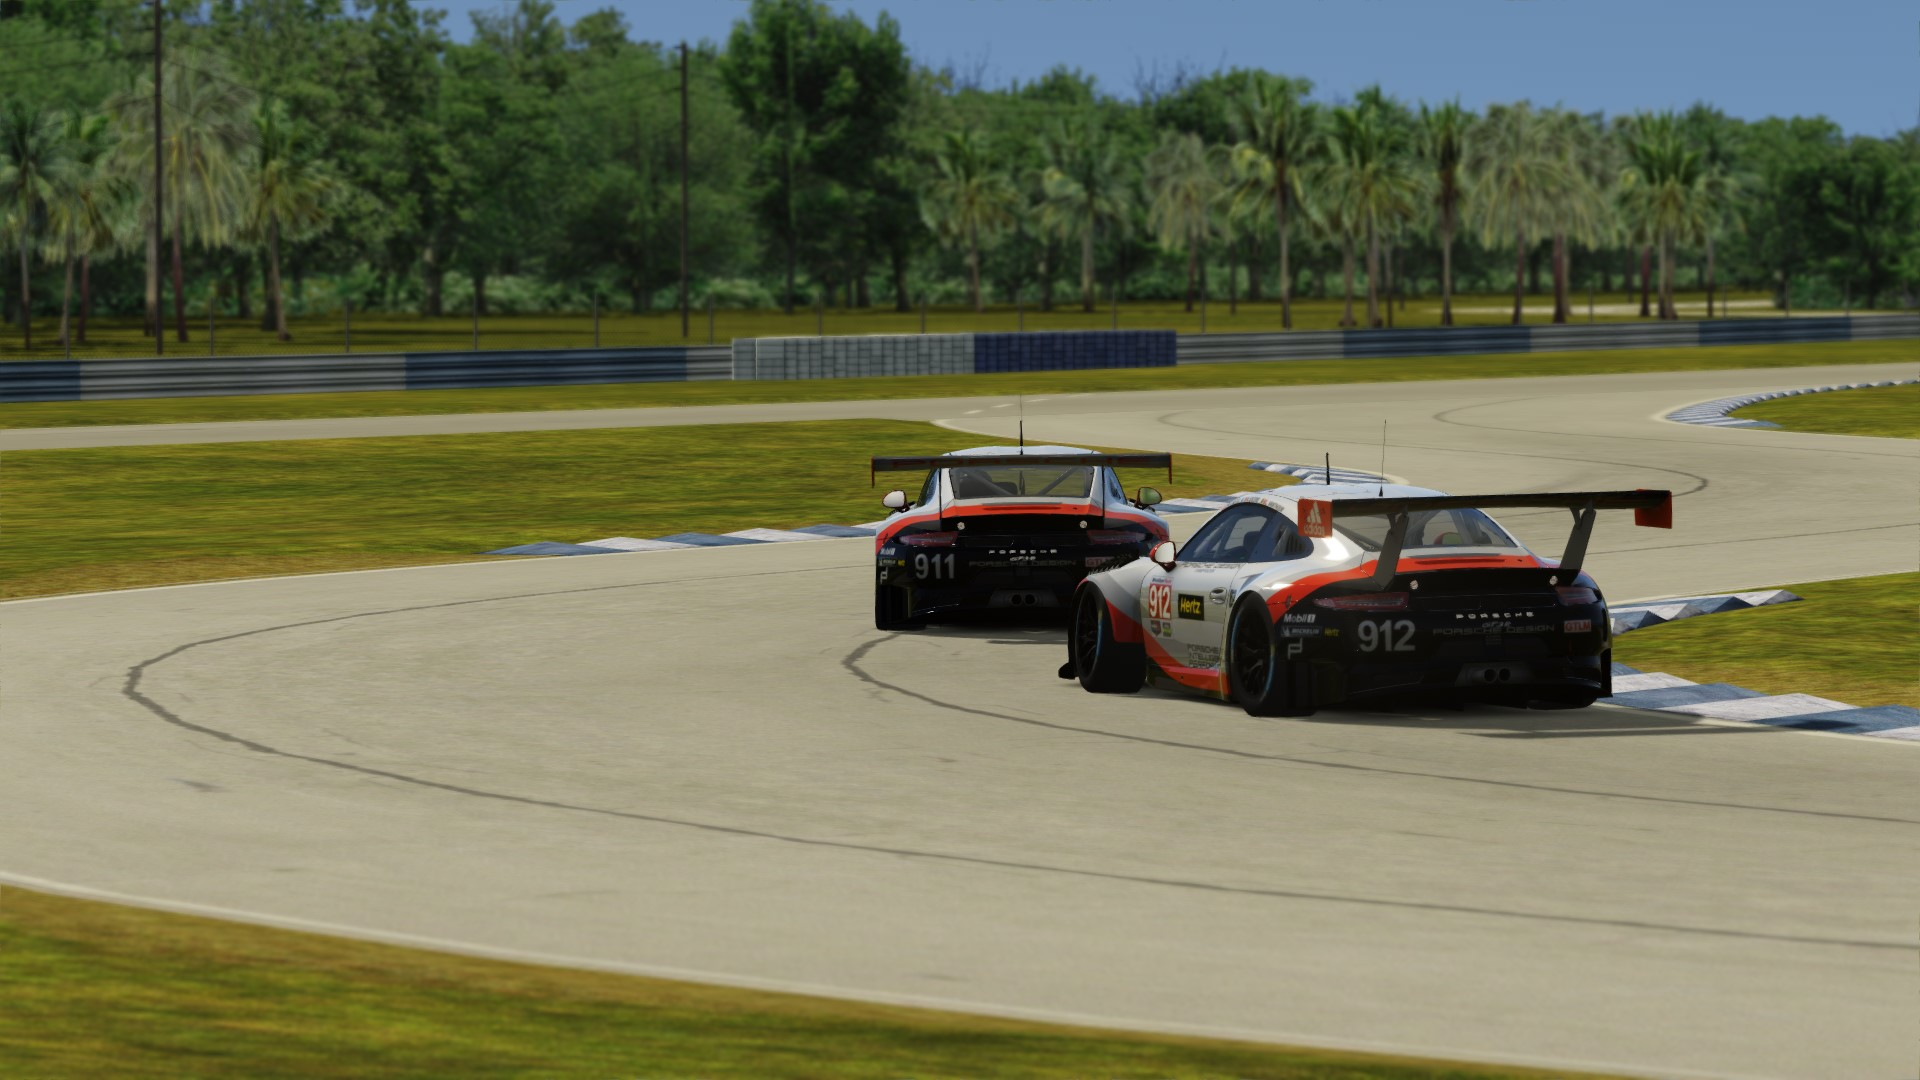 Screenshot_ks_porsche_911_gt3_r_2016_sebring_19-3-117-20-20-15.jpg